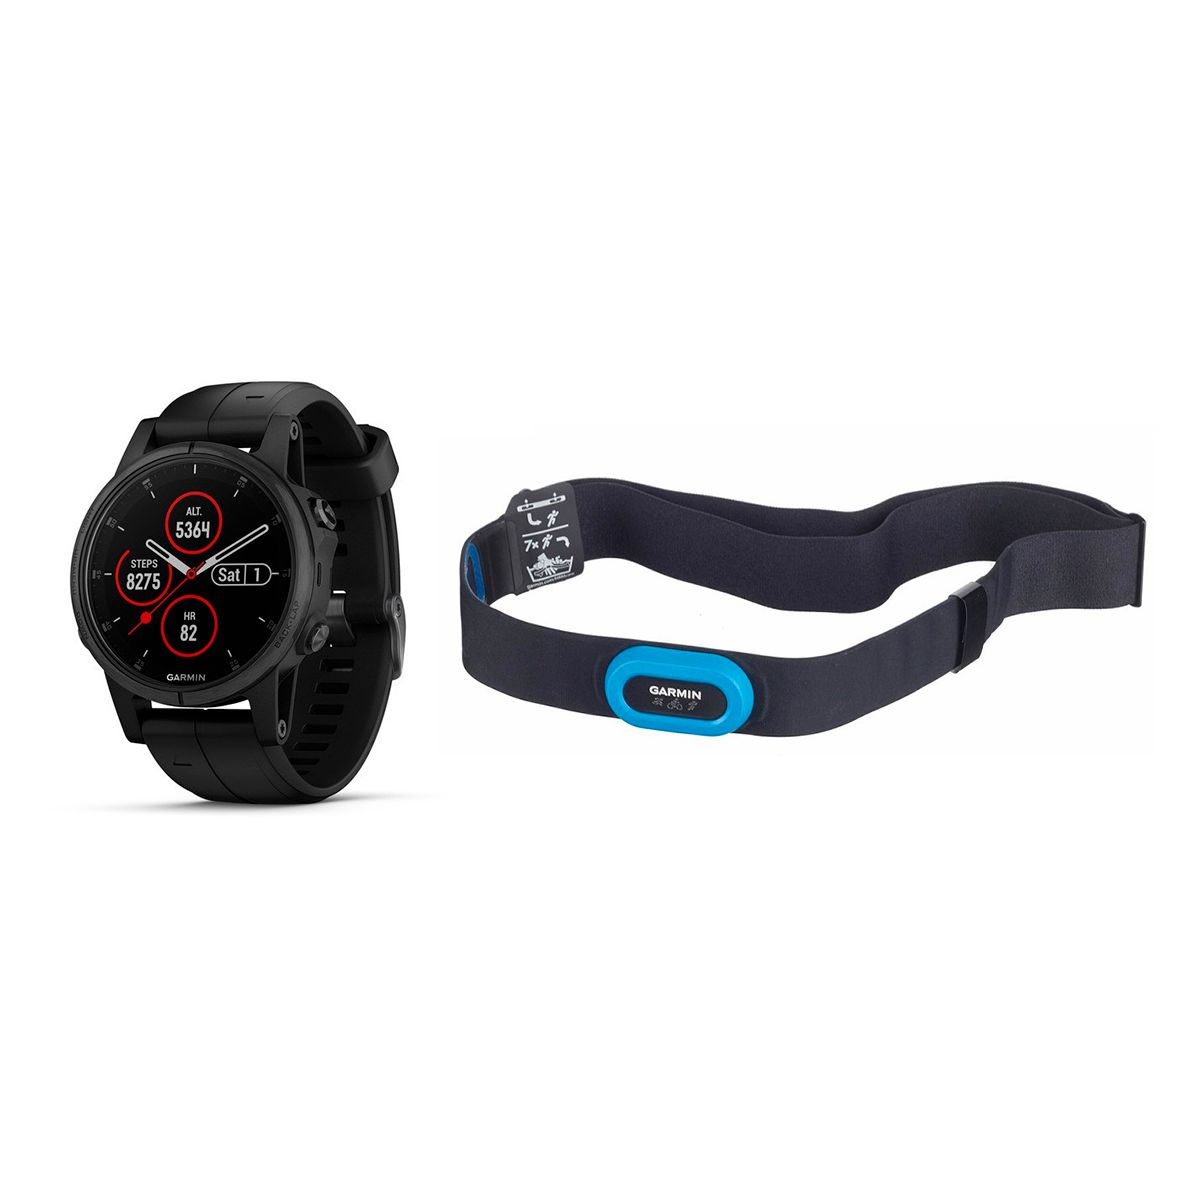 Garmin Fenix 5S Plus Sapphire Bundle GPS watch